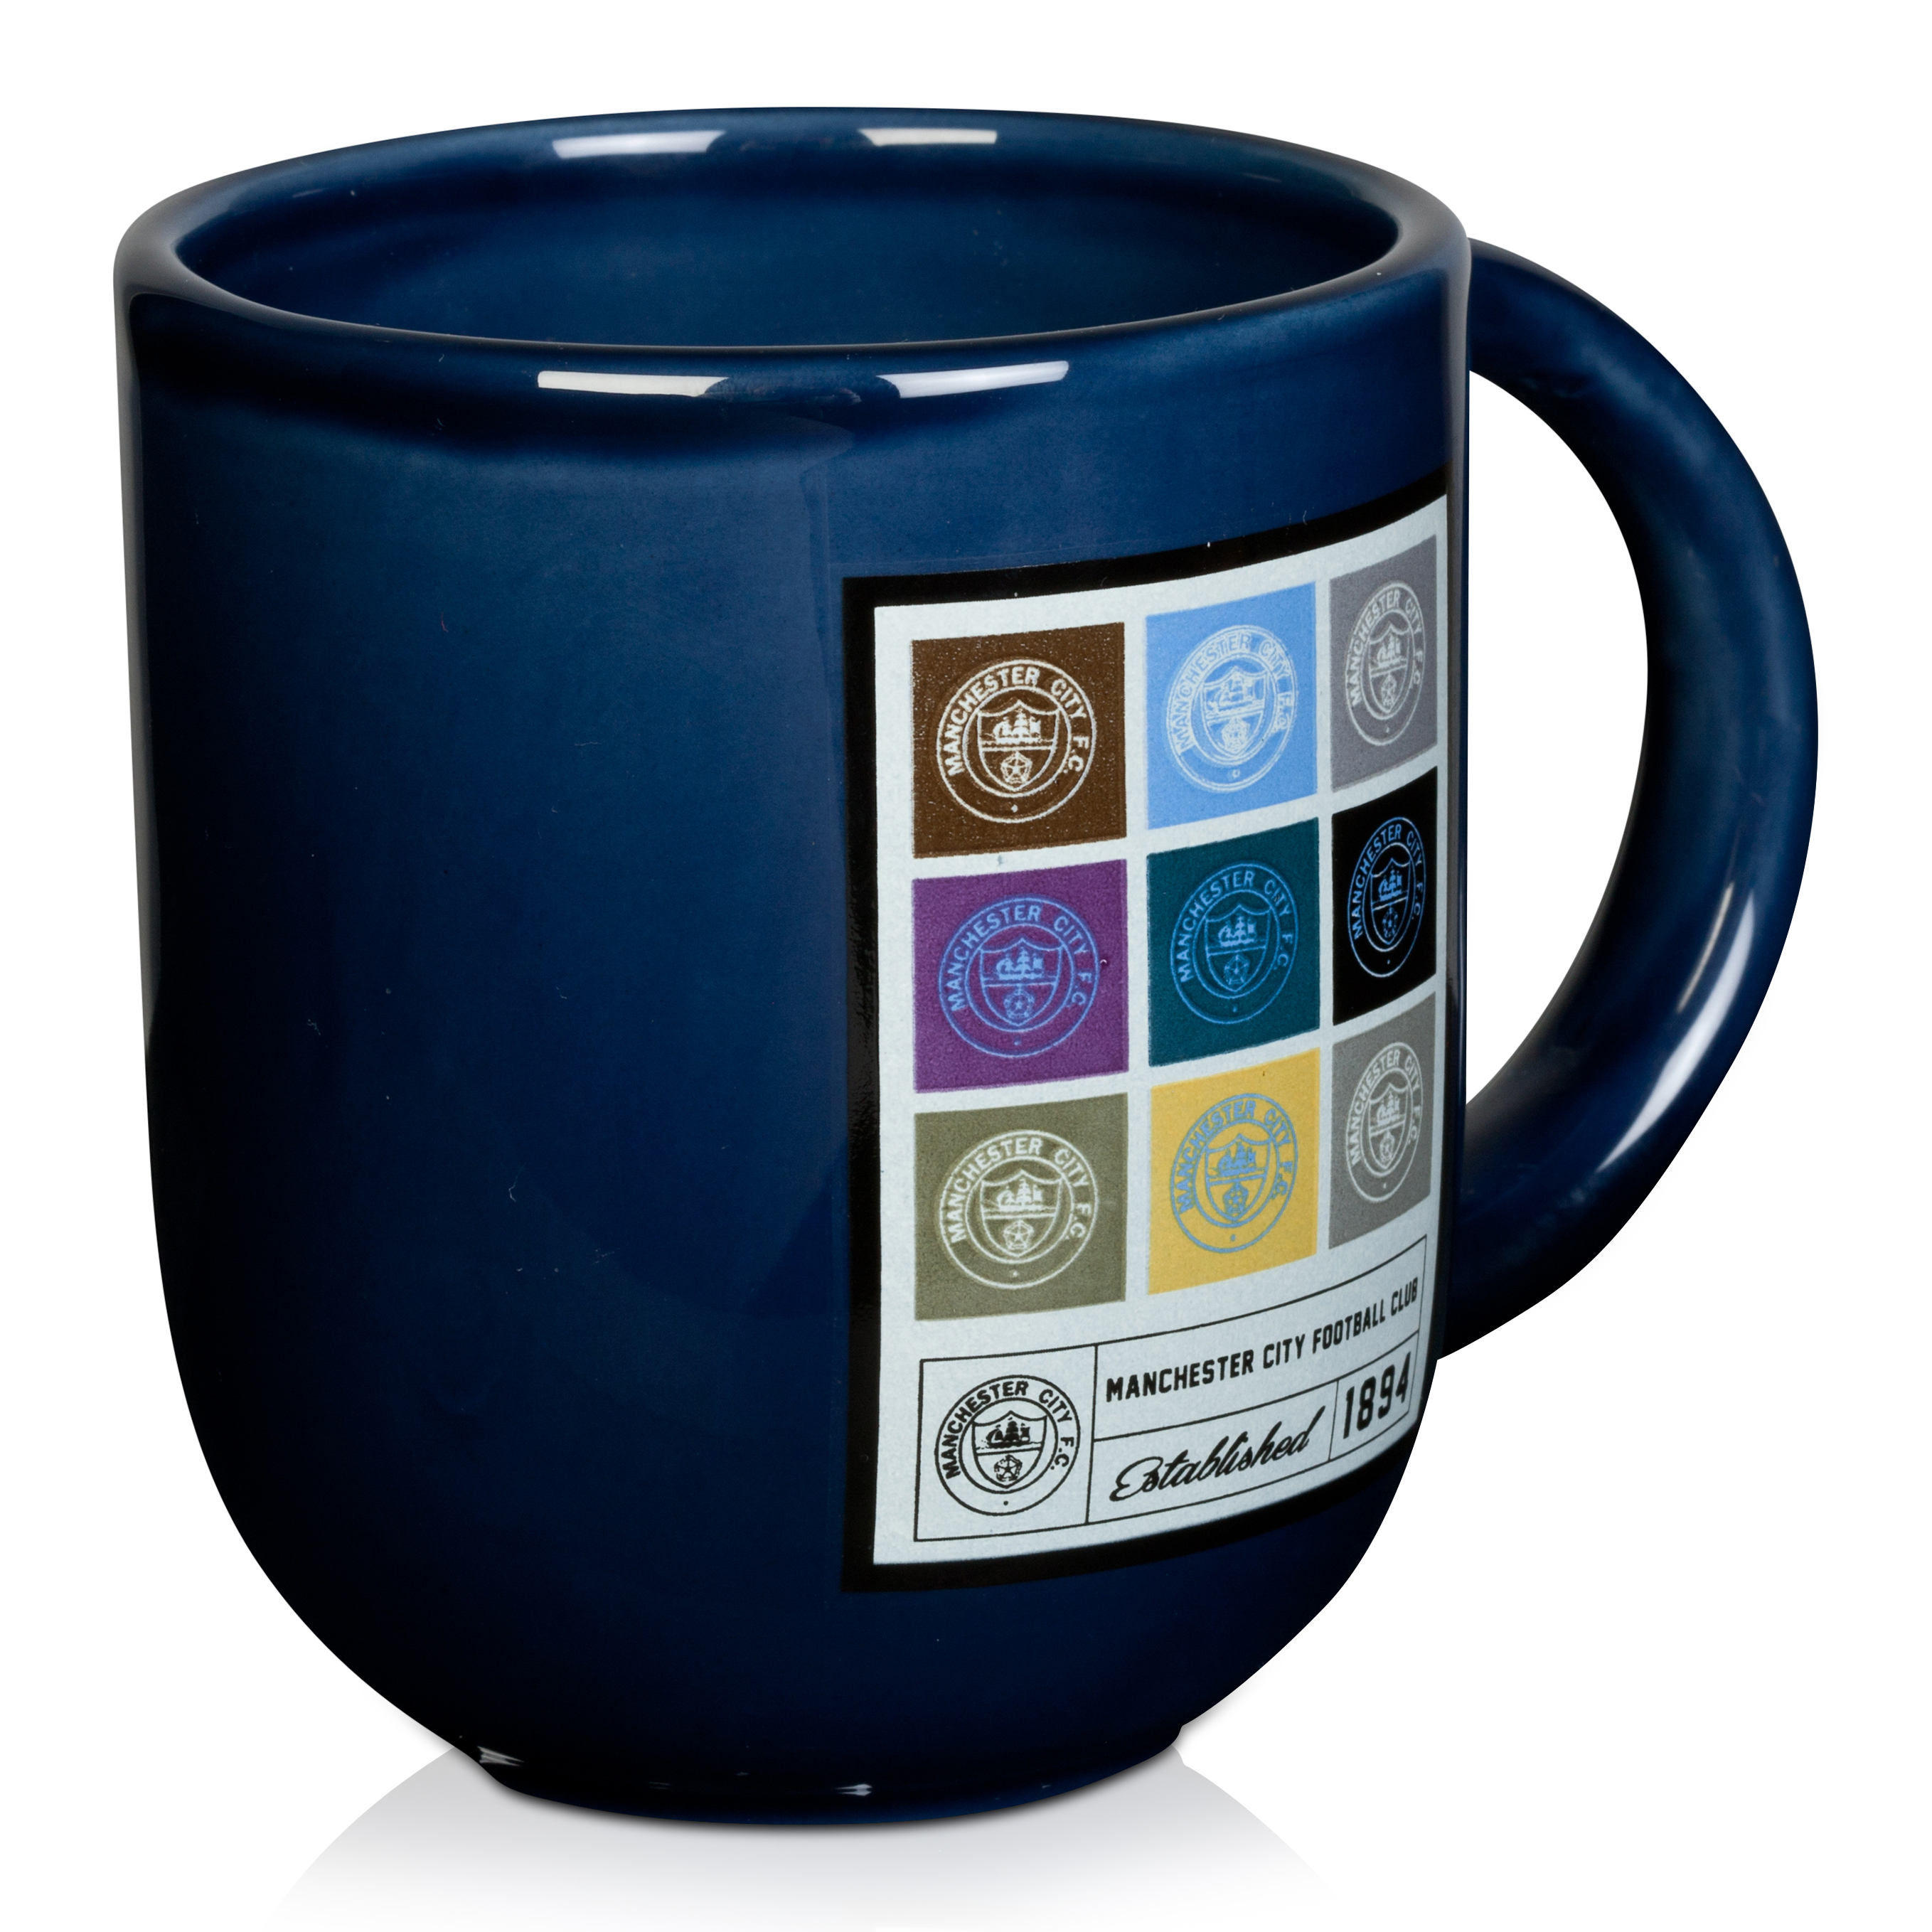 Manchester City Retro Mug in Gift Box